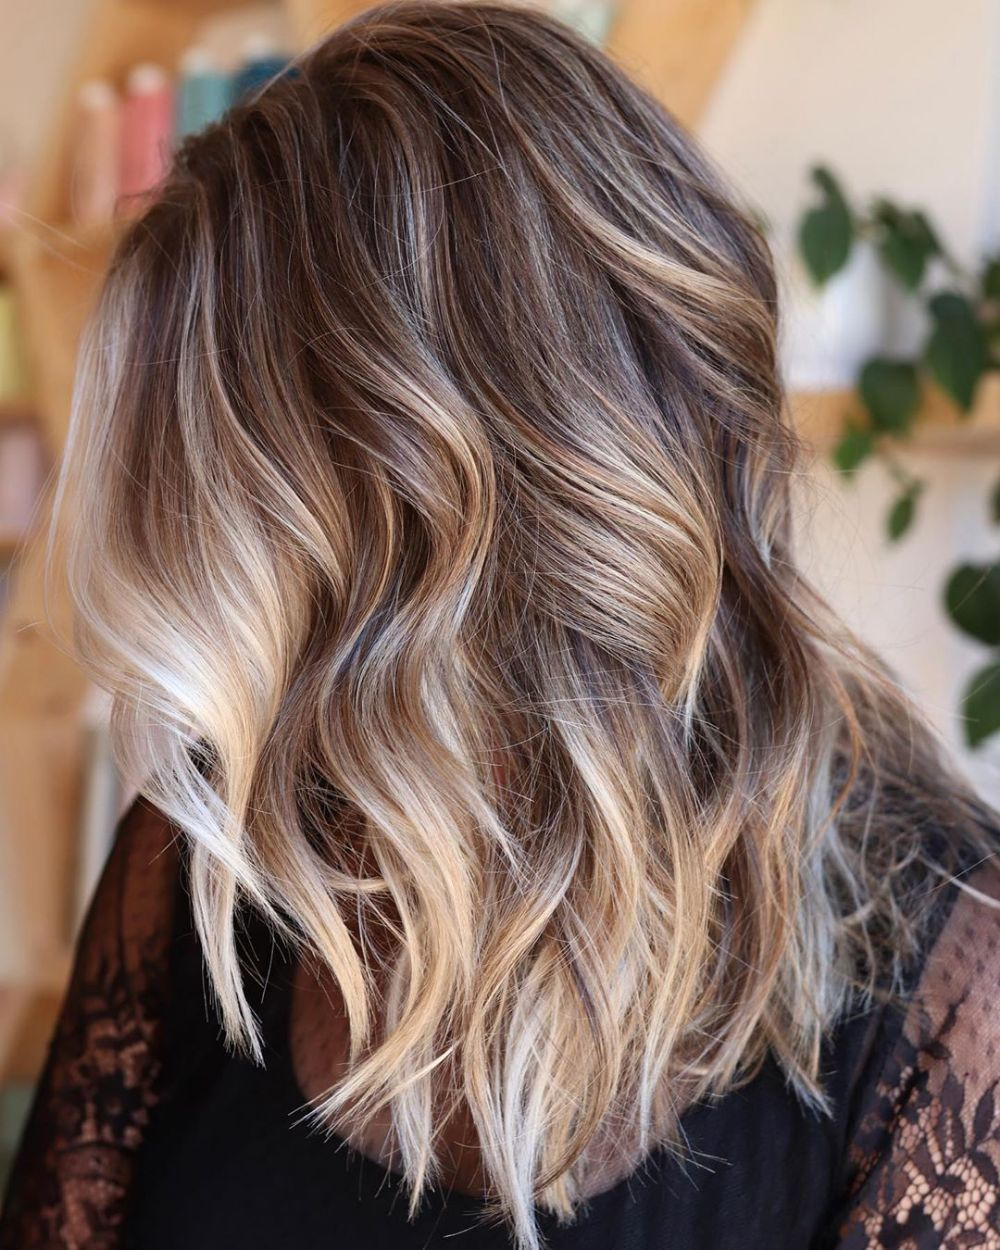 70 Flattering Balayage Hair Color Ideas For 2021 Balayage Hair Spring Hair Color Hair Color Balayage